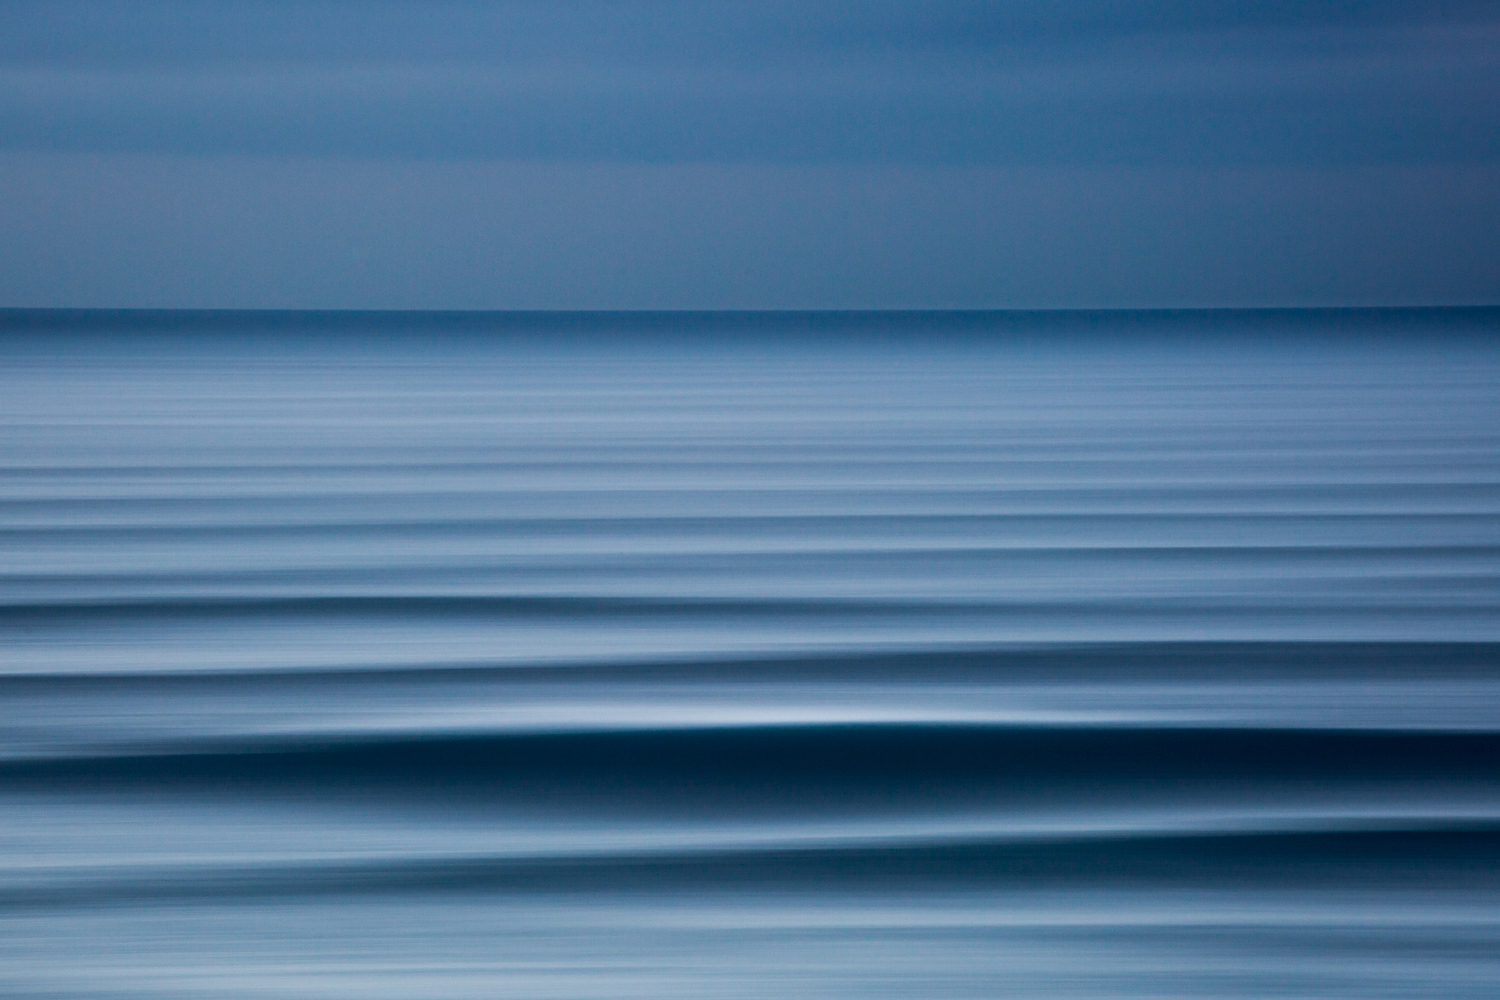 Traces of teal